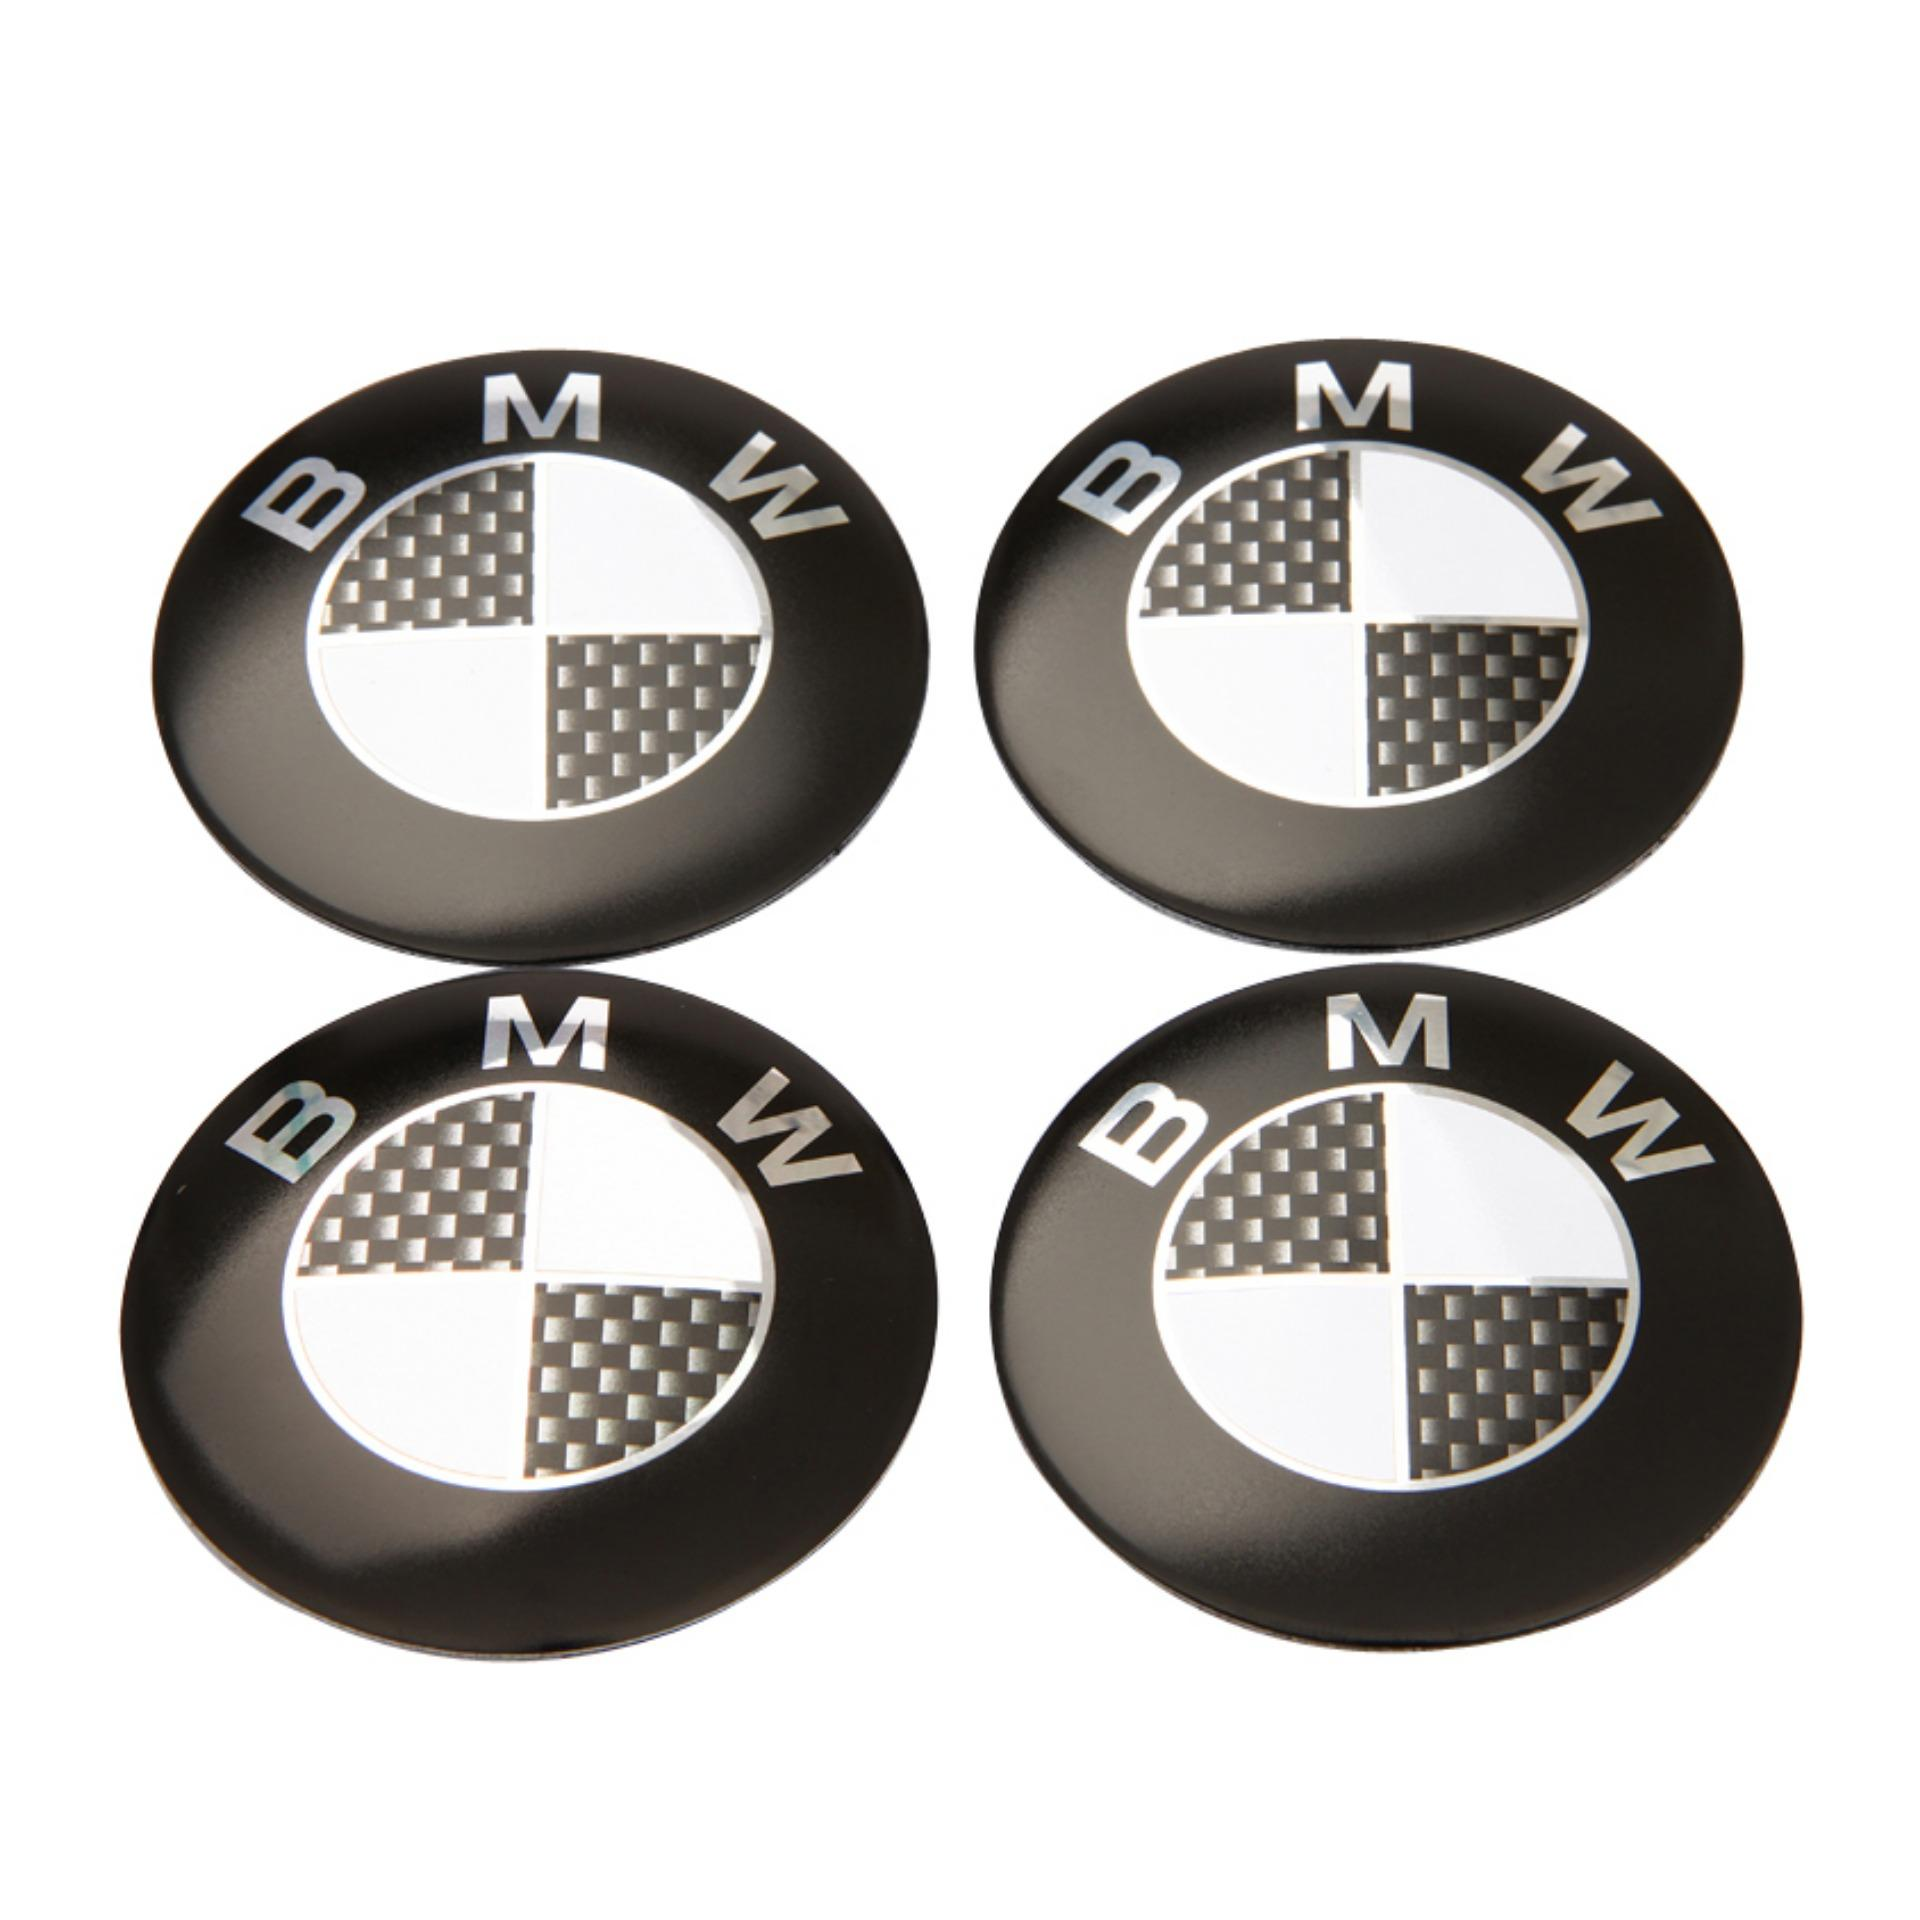 Sale 4Pcs 56 5Mm Car Emblem Wheel Center Hub Caps Badge Covers Sticker For Bmw Logo E46 E39 E90 E60 F10 F30 E36 F20 Intl Oem Branded